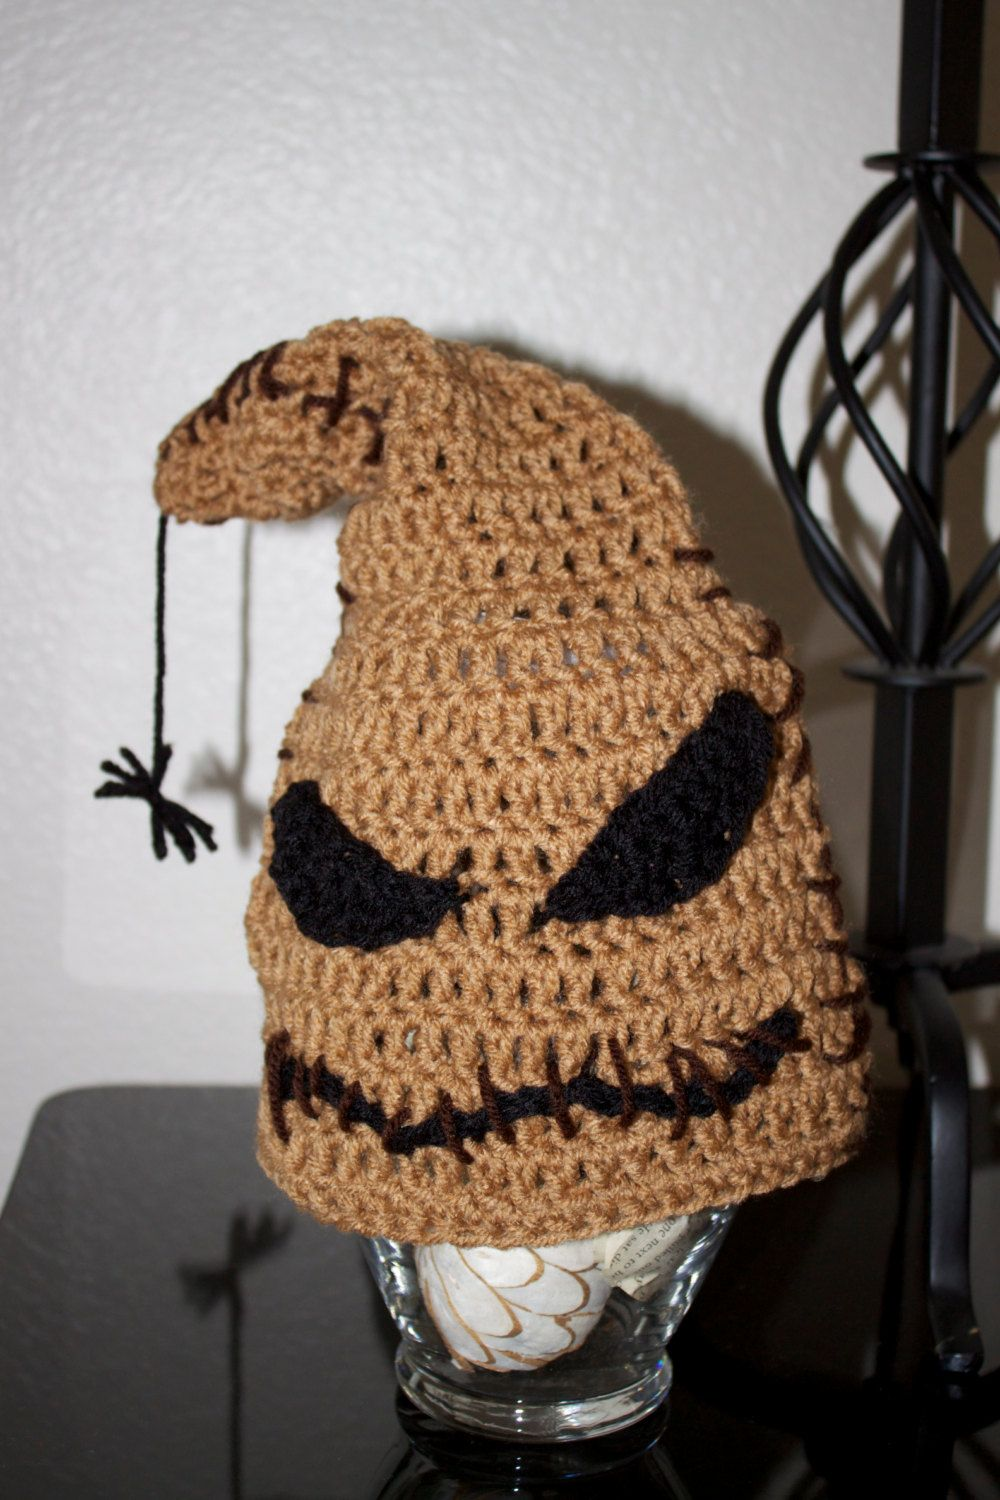 Crochet Nightmare Before Christmas Oogie Boogie Inspired Beanie Made ...